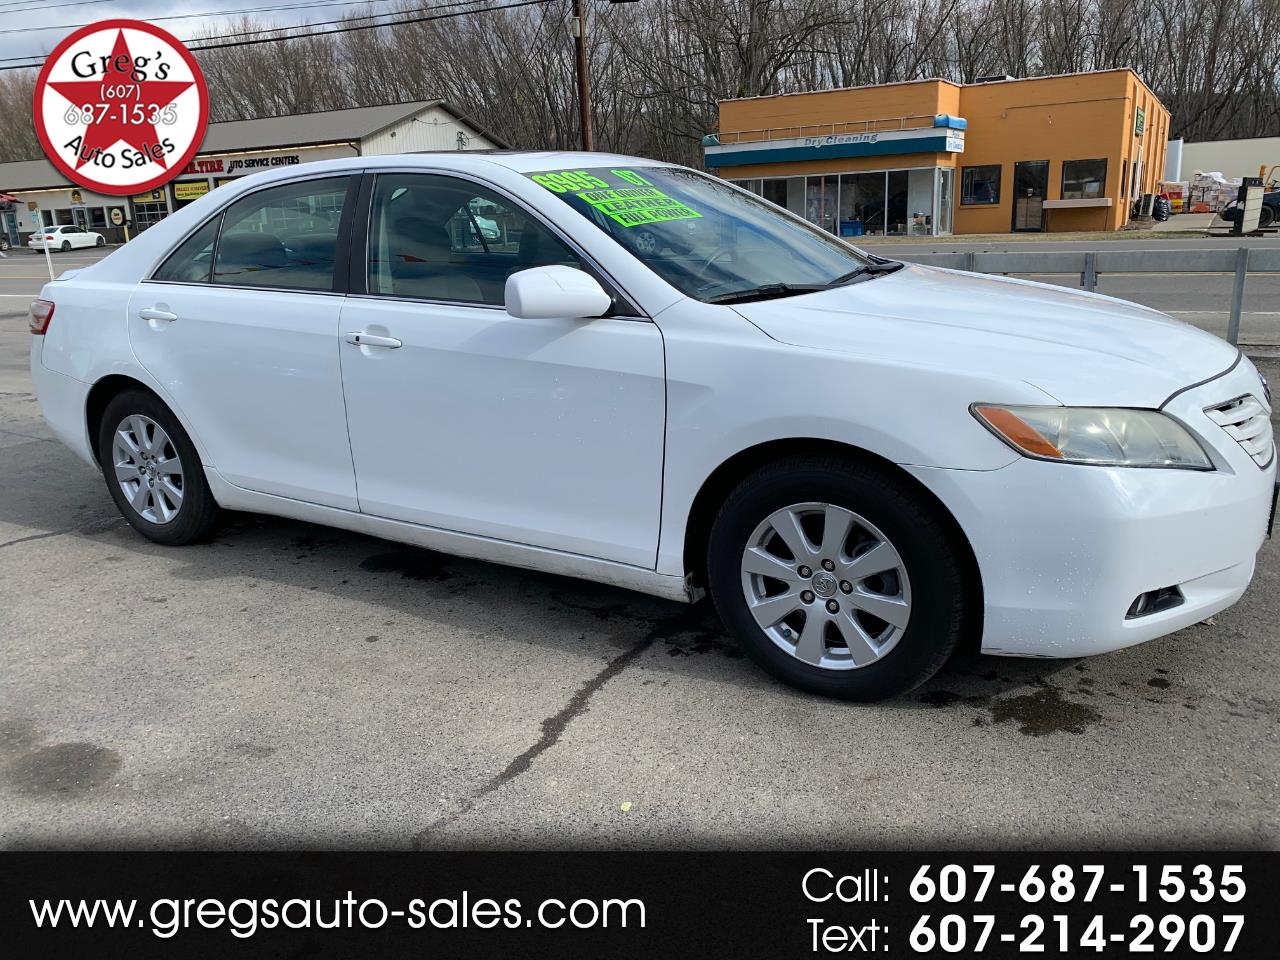 Toyota Camry 4dr Sdn V6 Auto XLE (Natl) 2007